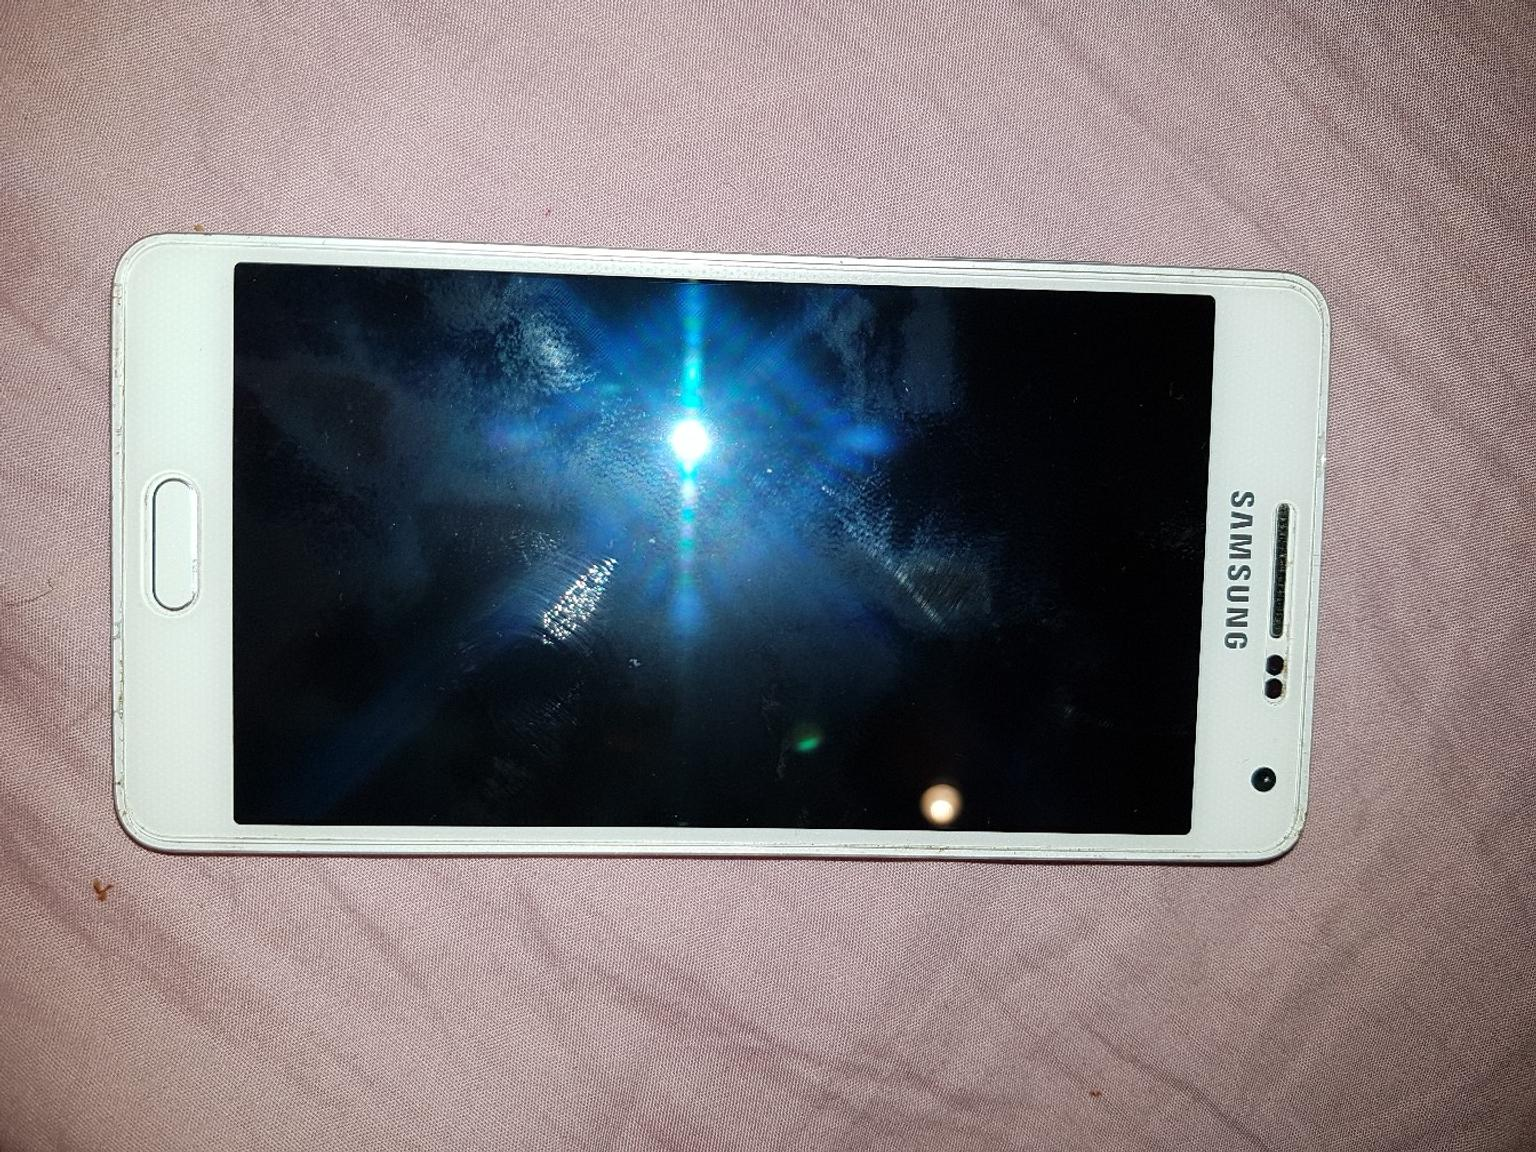 Samsung a5 in S30 Sheffield for free for sale - Shpock